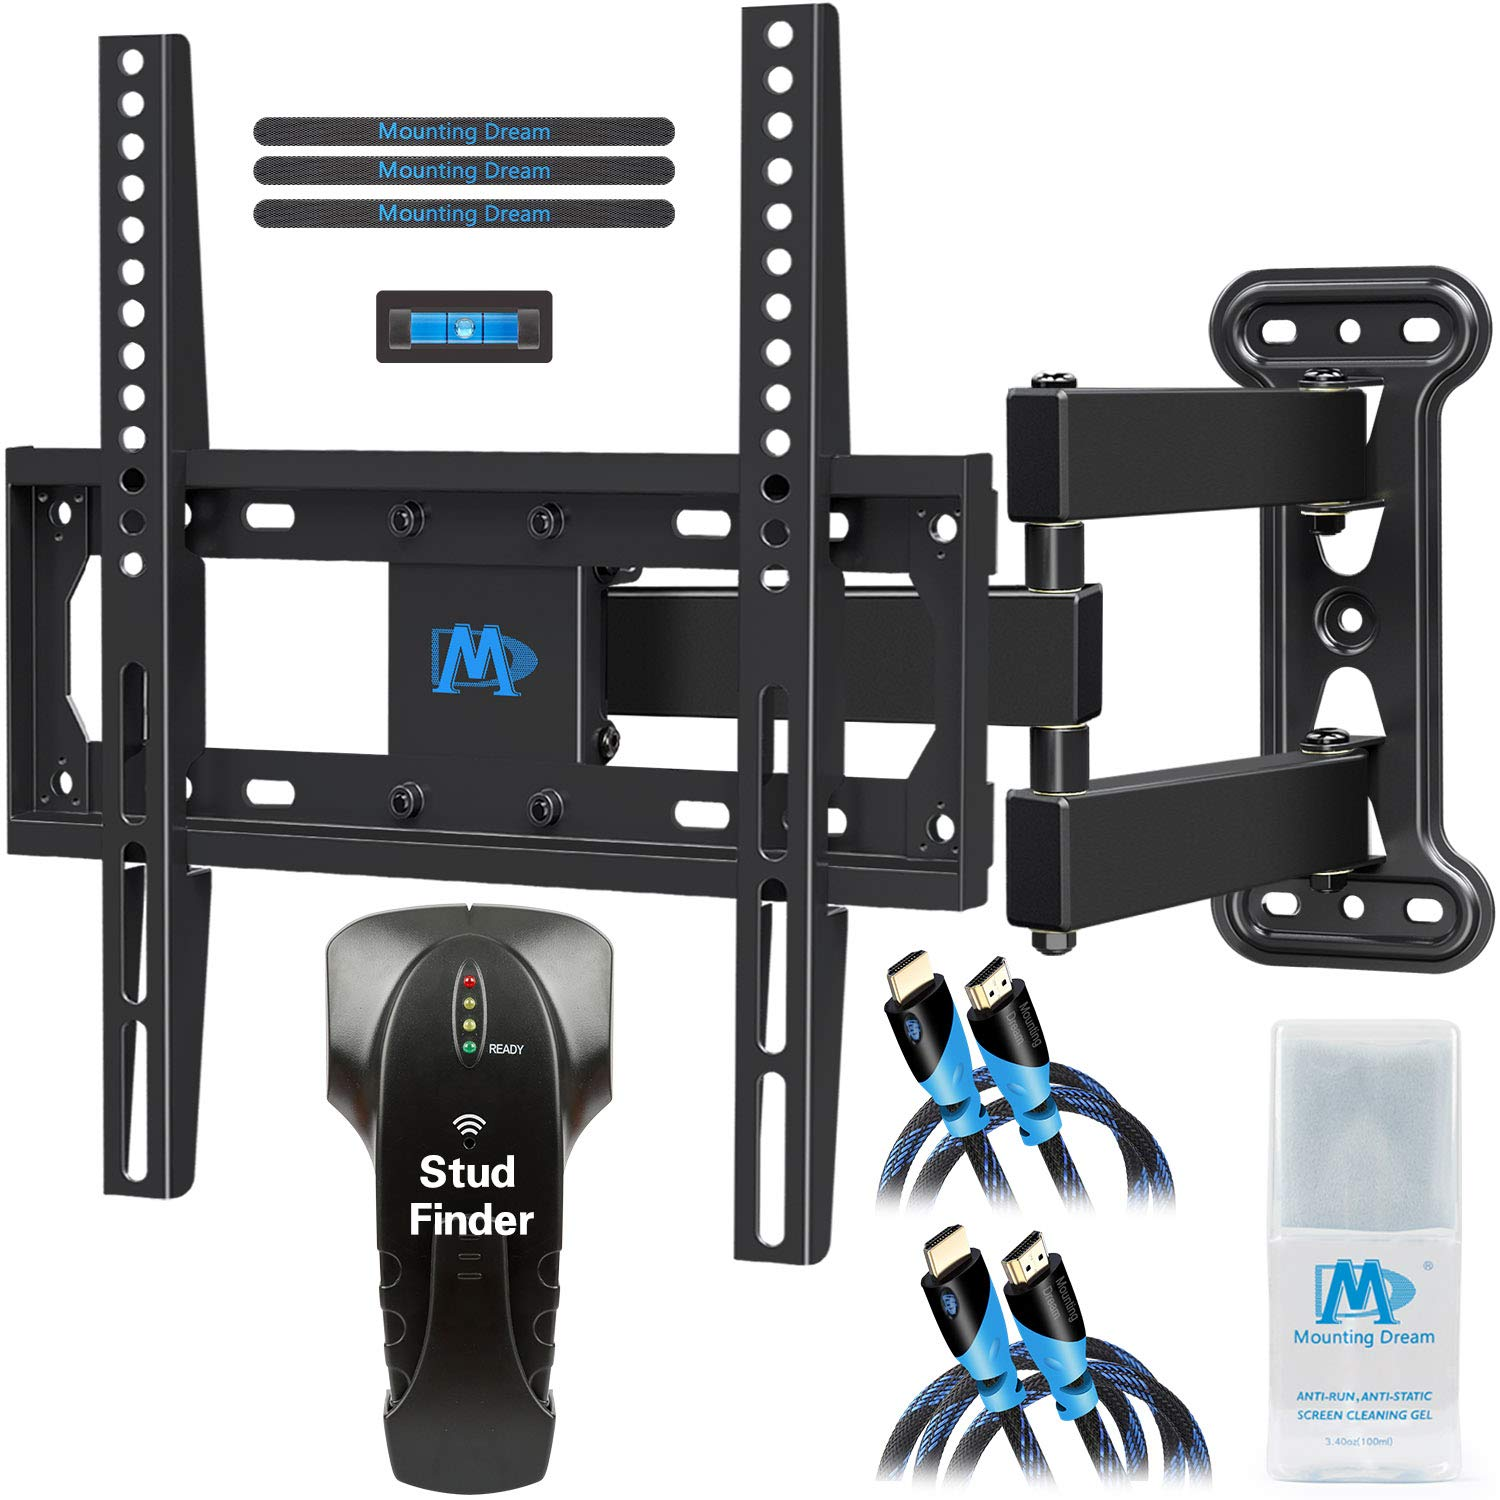 Mounting Dream Full Motion TV Mount for 26-55 Inches TVs, TV Bracket Kit Includes Stud Finder & 2 HDMI Cables, TV Wall Mount Bracket up to VESA 400x400mm and 60lbs loading, MD2377-KT by Mounting Dream